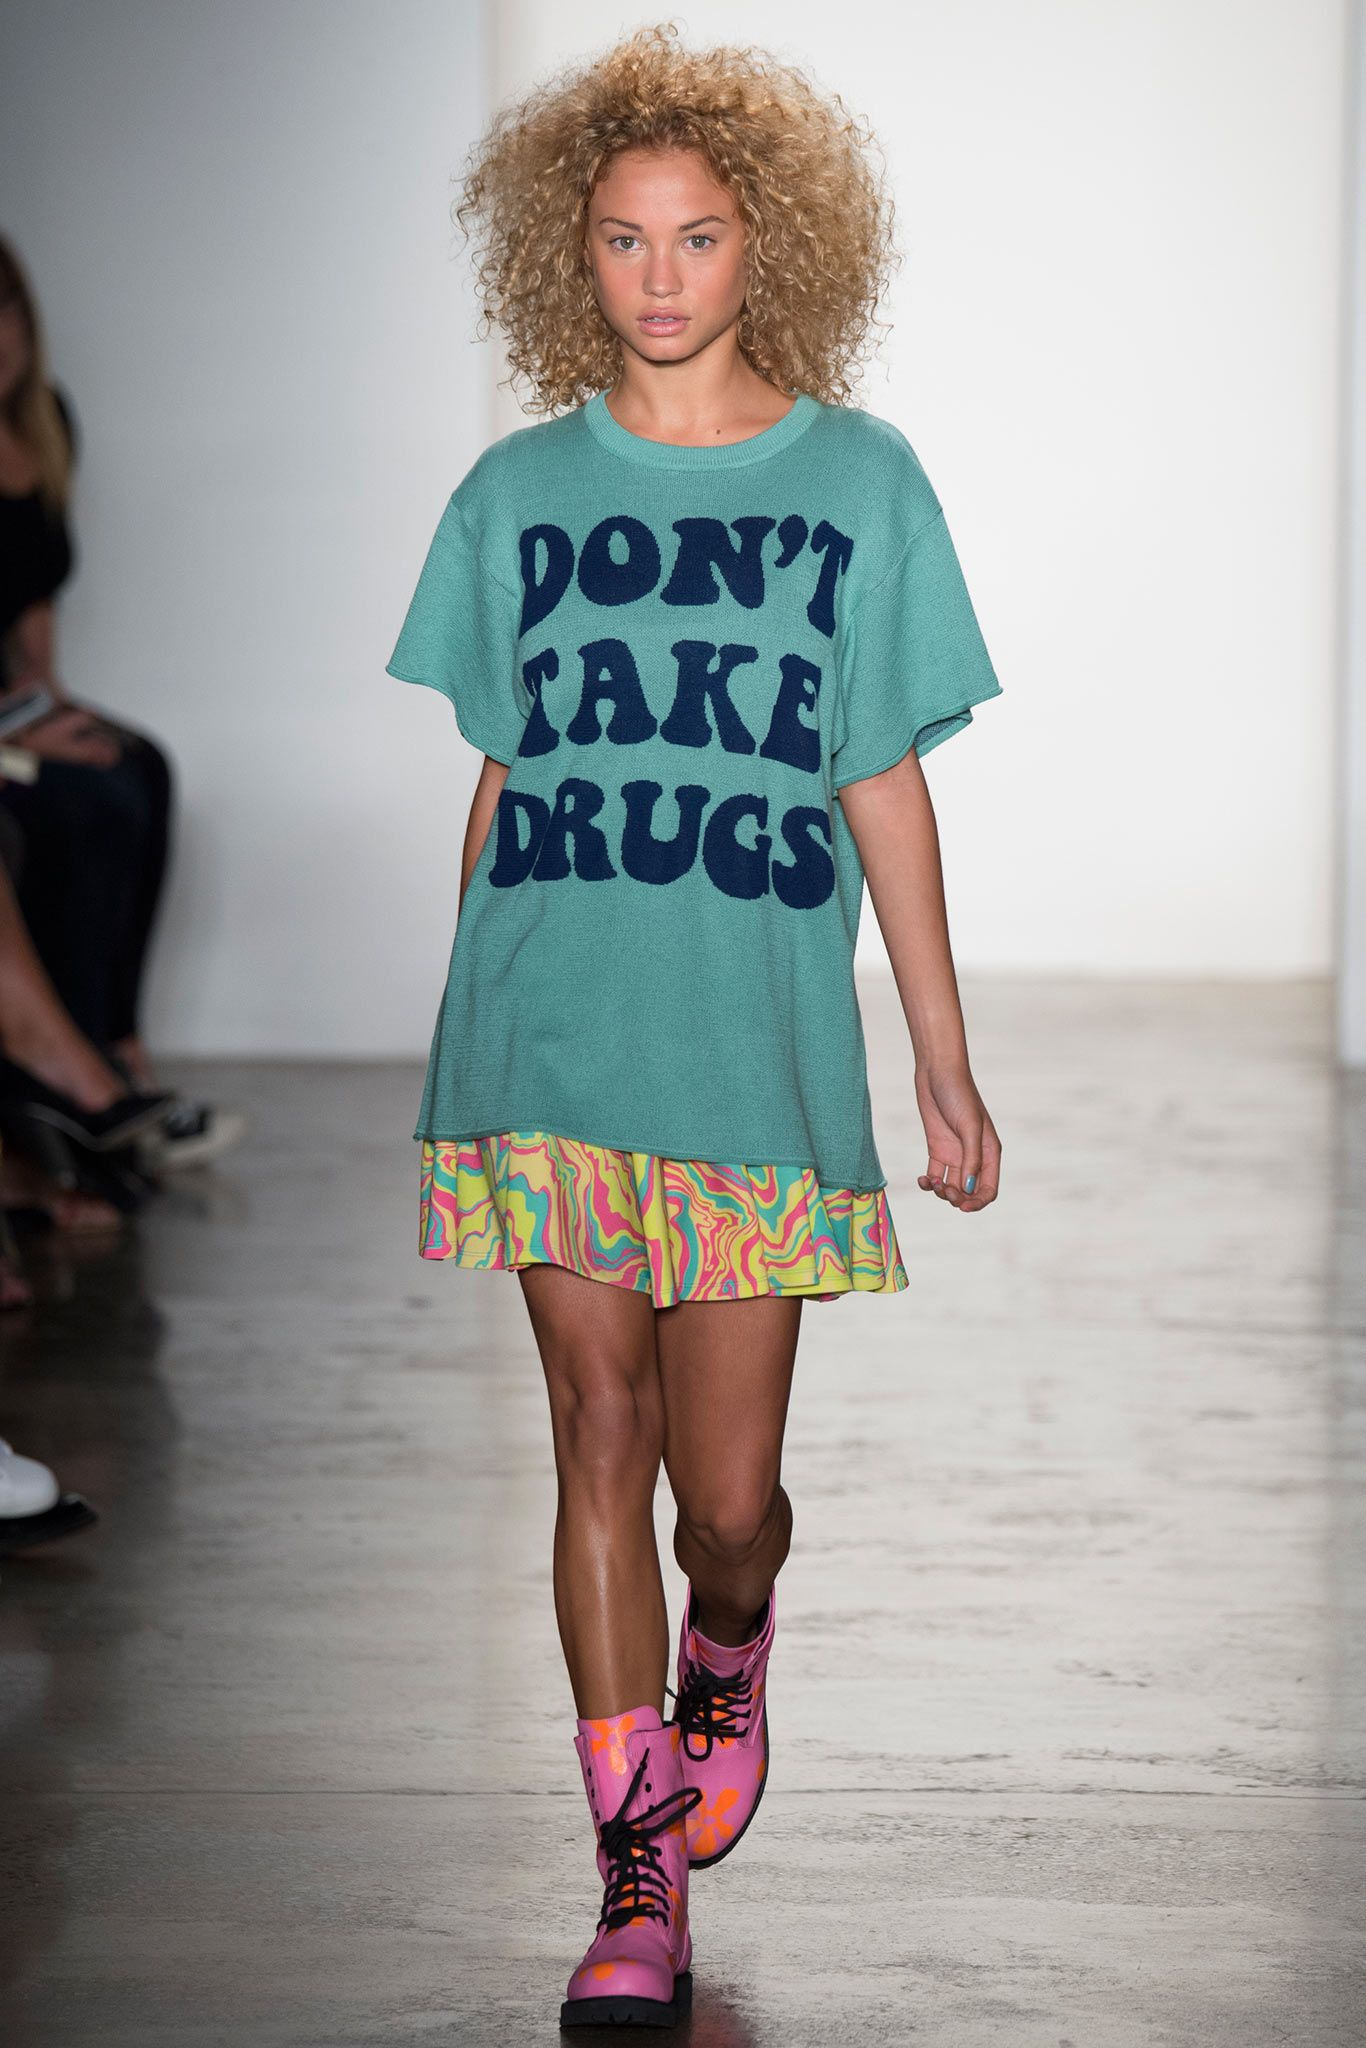 In this design by Jeremy Scott for Spring 2015 RTW, many features can be seen that are similar to ones that have been seen throughout the 90s. The iconic printed t-shirts began in the 90s, along with the oversized size of shirts, especially for women. Furthermore, the crazy hair along with the honky, bright boots all add to this 1990s effect. 4/7/2015